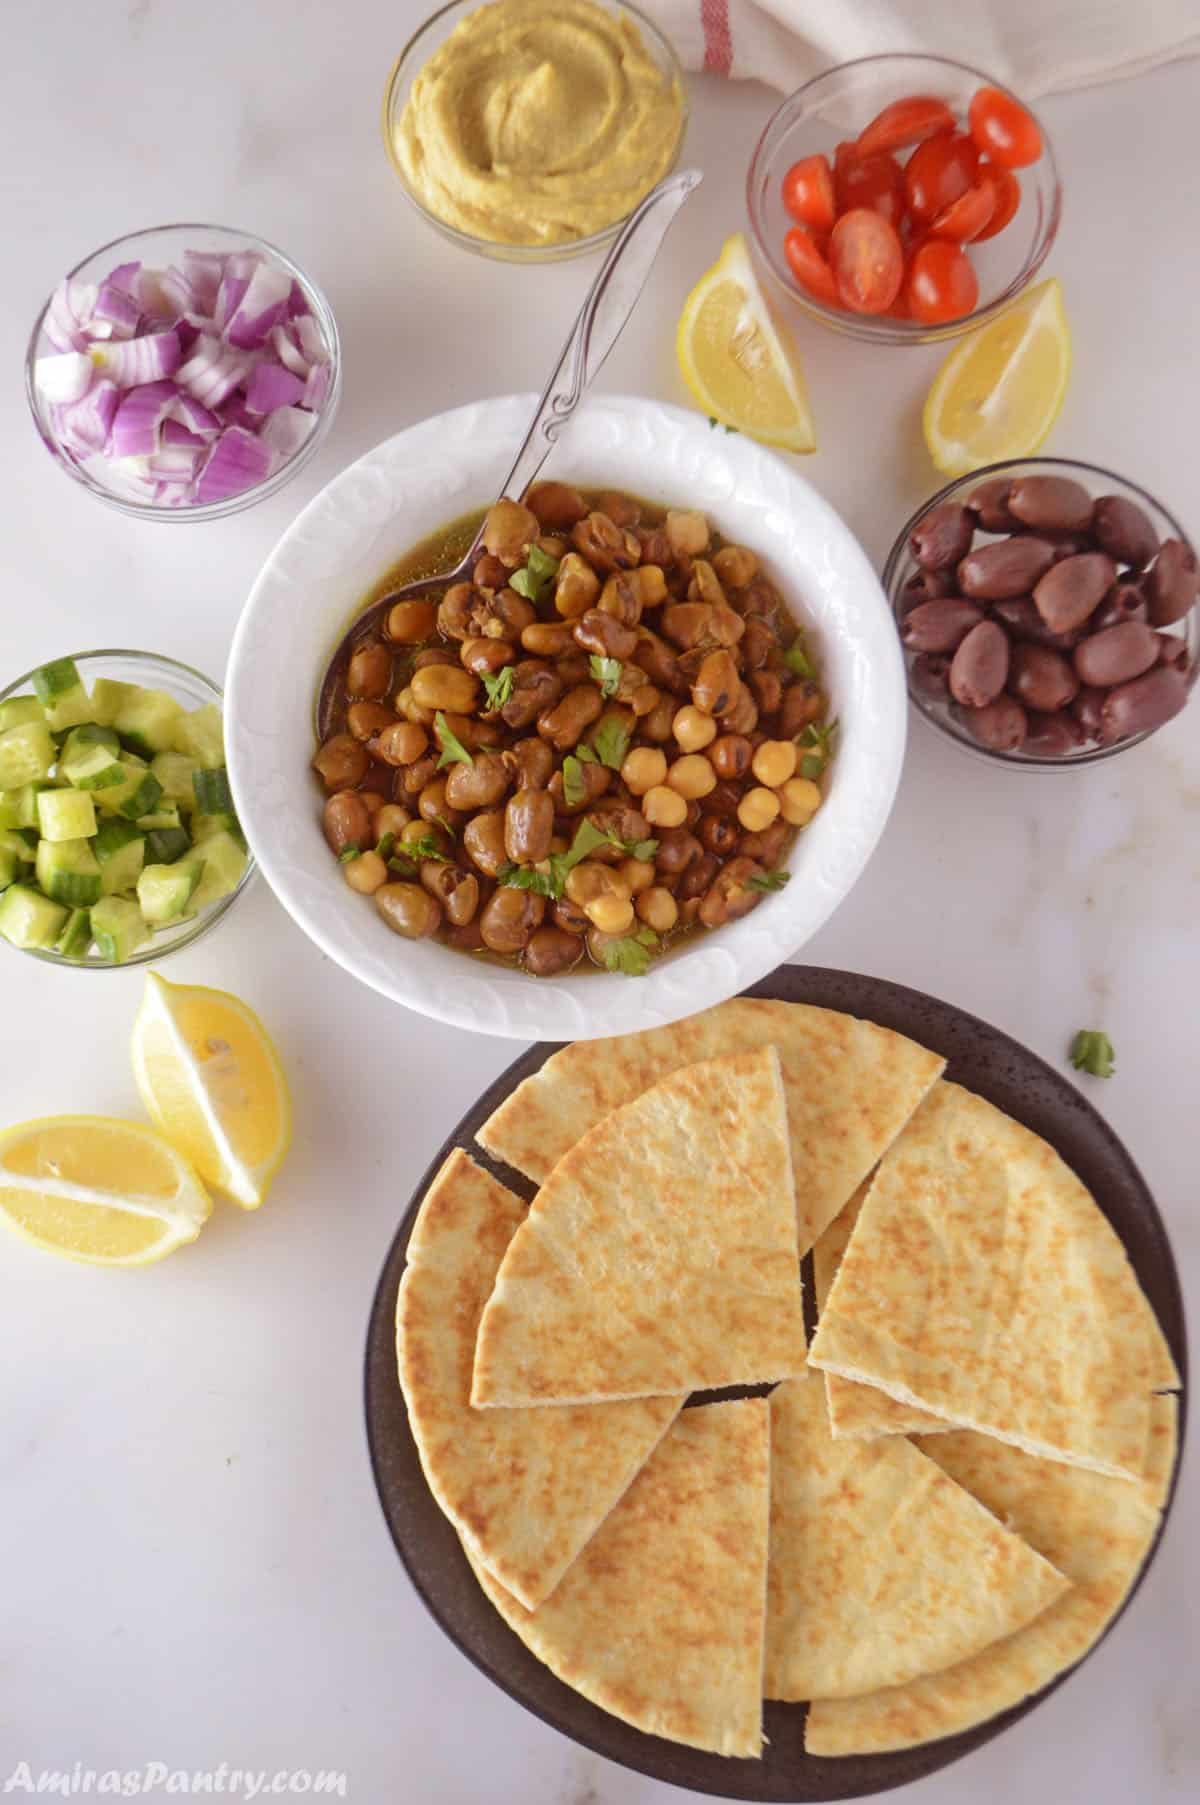 A breakfast table with bowls of ful Medames, hummus, diced onions, tomatoes, cucumber, lemon wedges and pita bread.